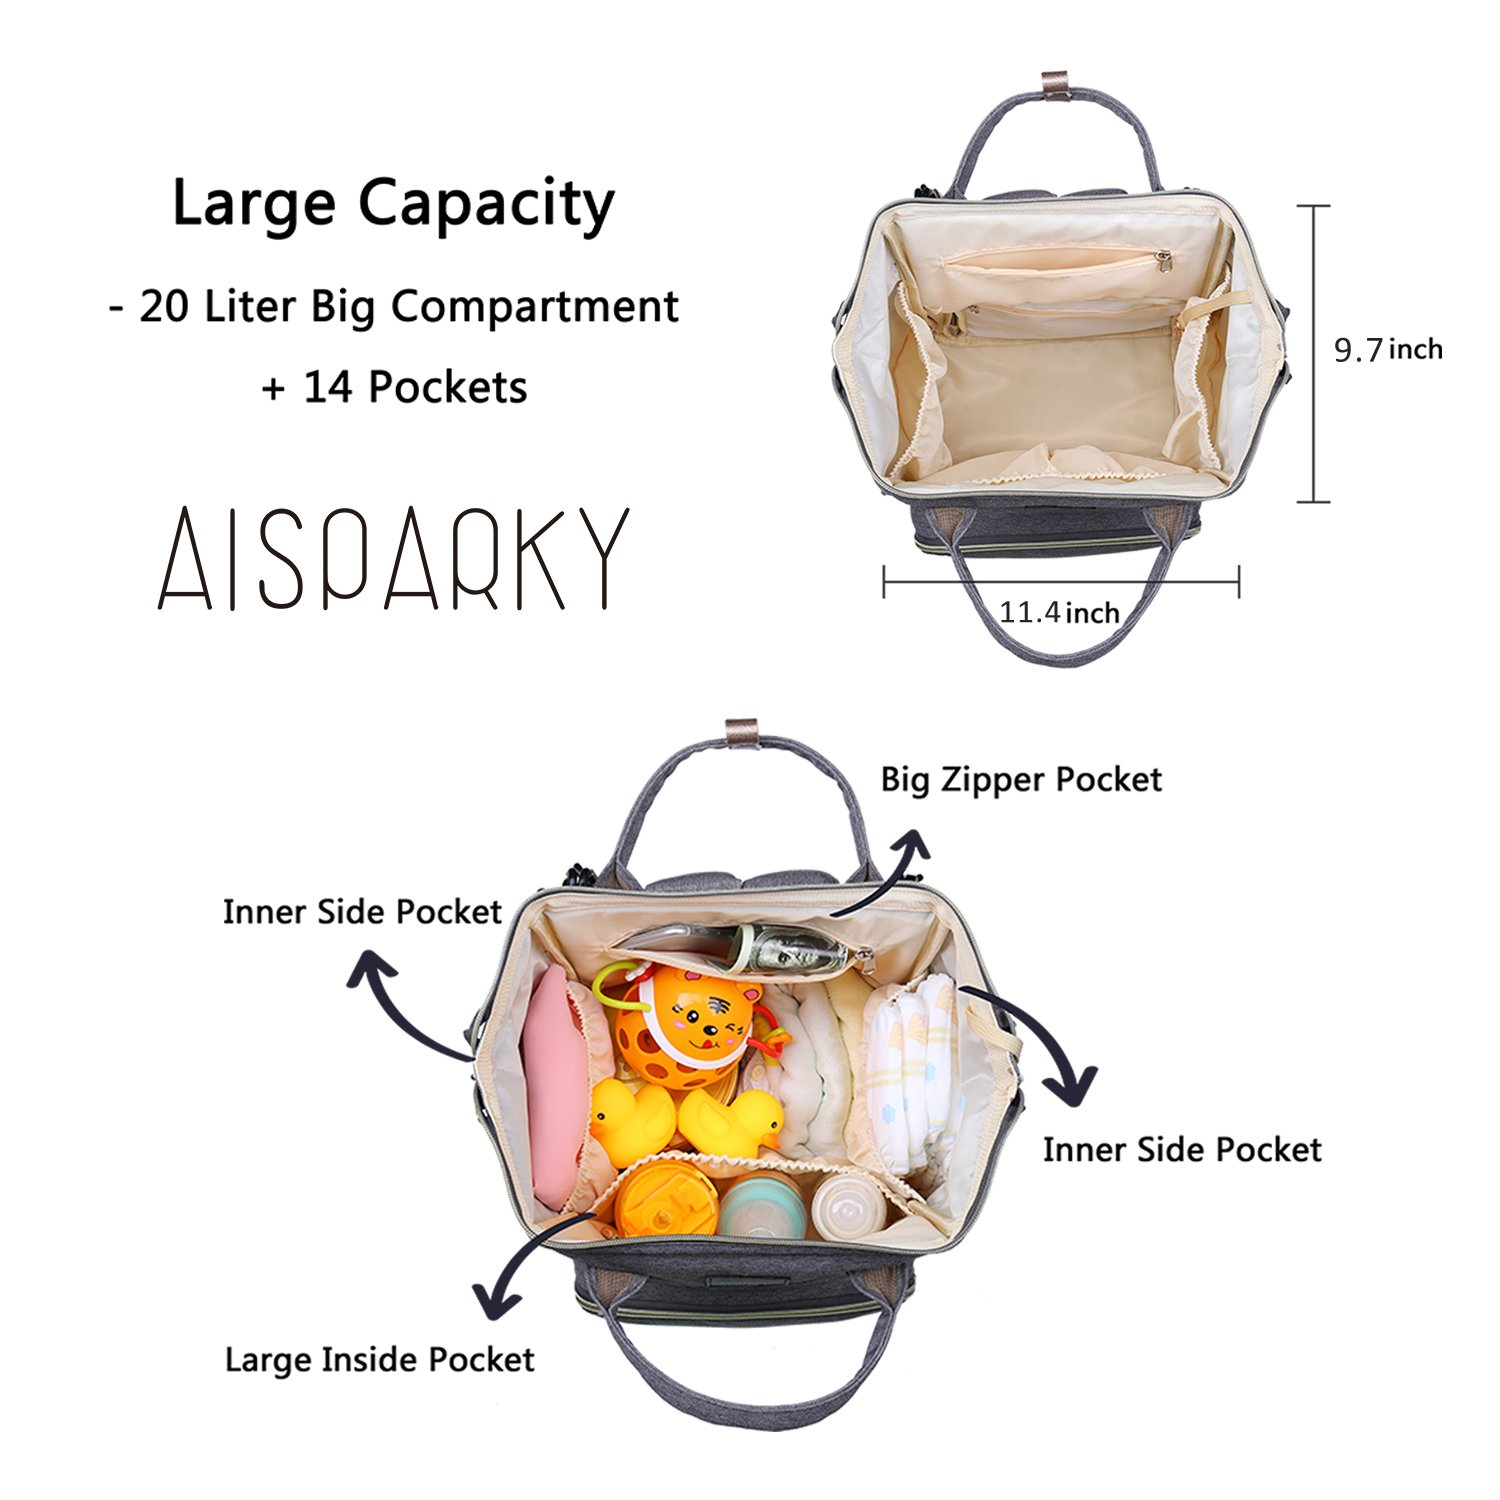 AISPARKY Diaper Bag Backpack Multi-Function Waterproof Travel Nappy Bag for Baby Care, Large Capacity, Durable and Stylish Changing Bag for Mom and Dad, Black by AISPARKY (Image #6)